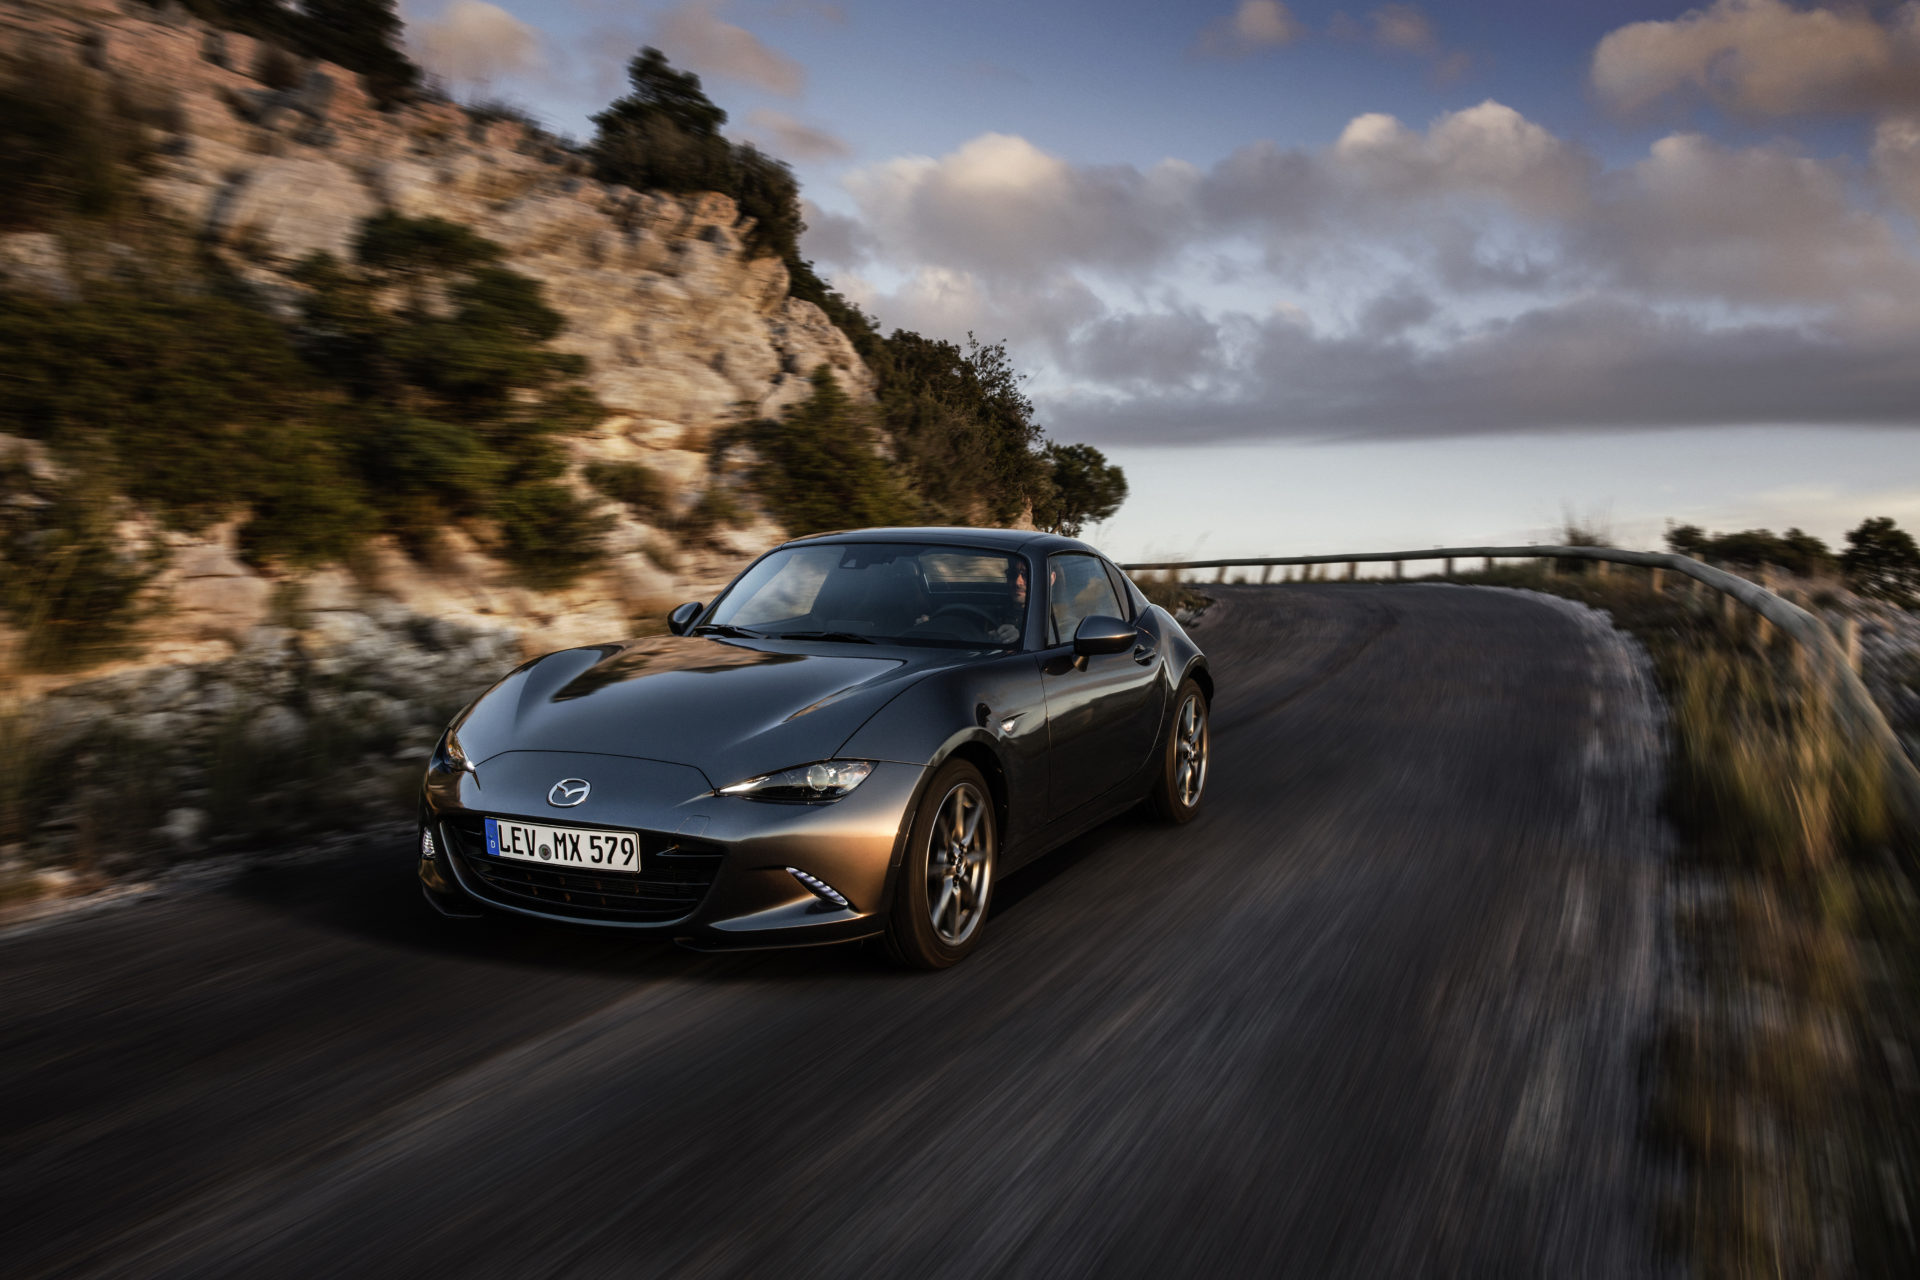 Mazda MX-5 wins Roadster of the Year at 2019 Auto Express New Car Awards